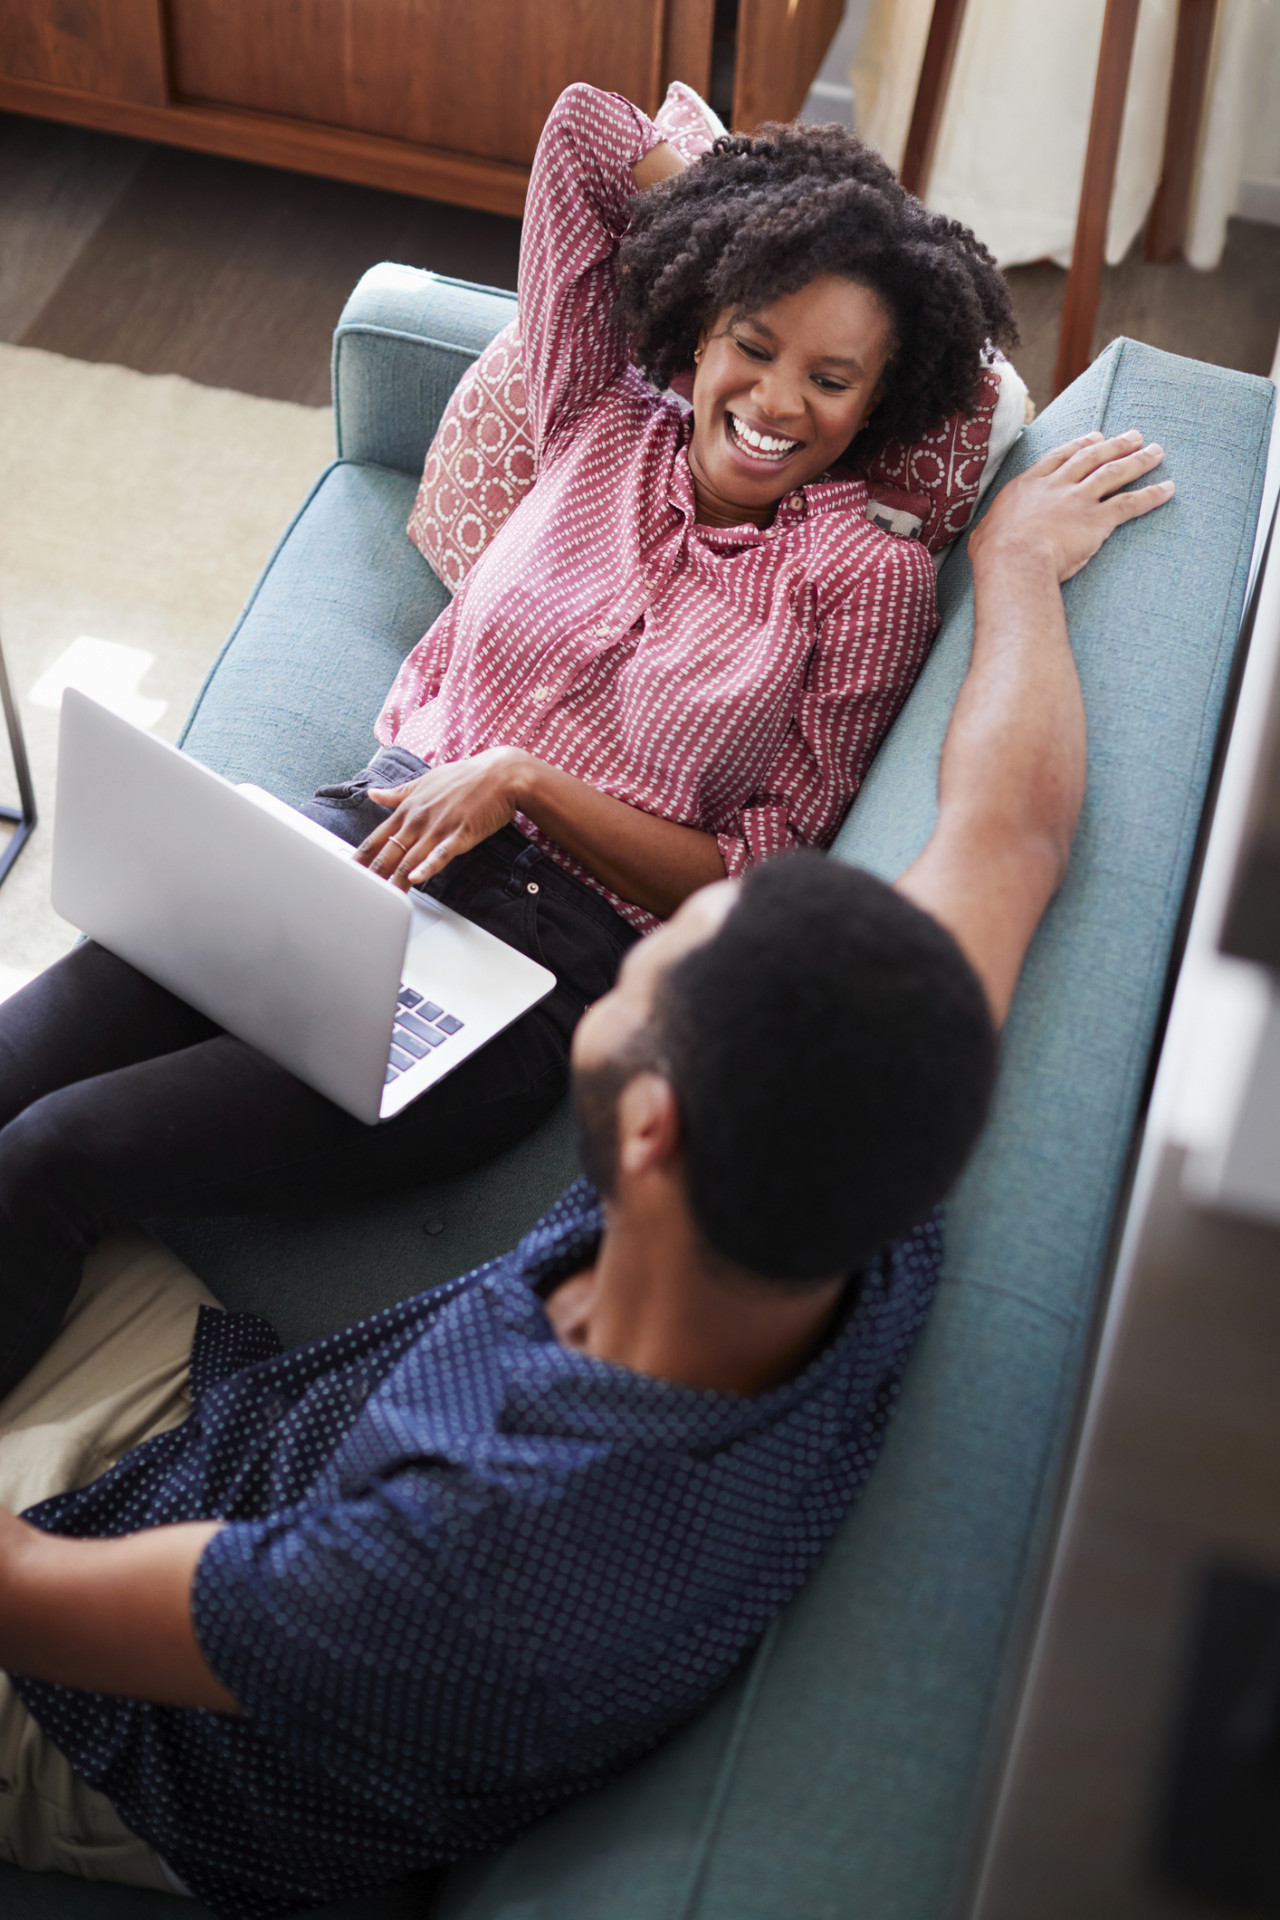 Couple sitting on sofa at home with woman using laptop computer.